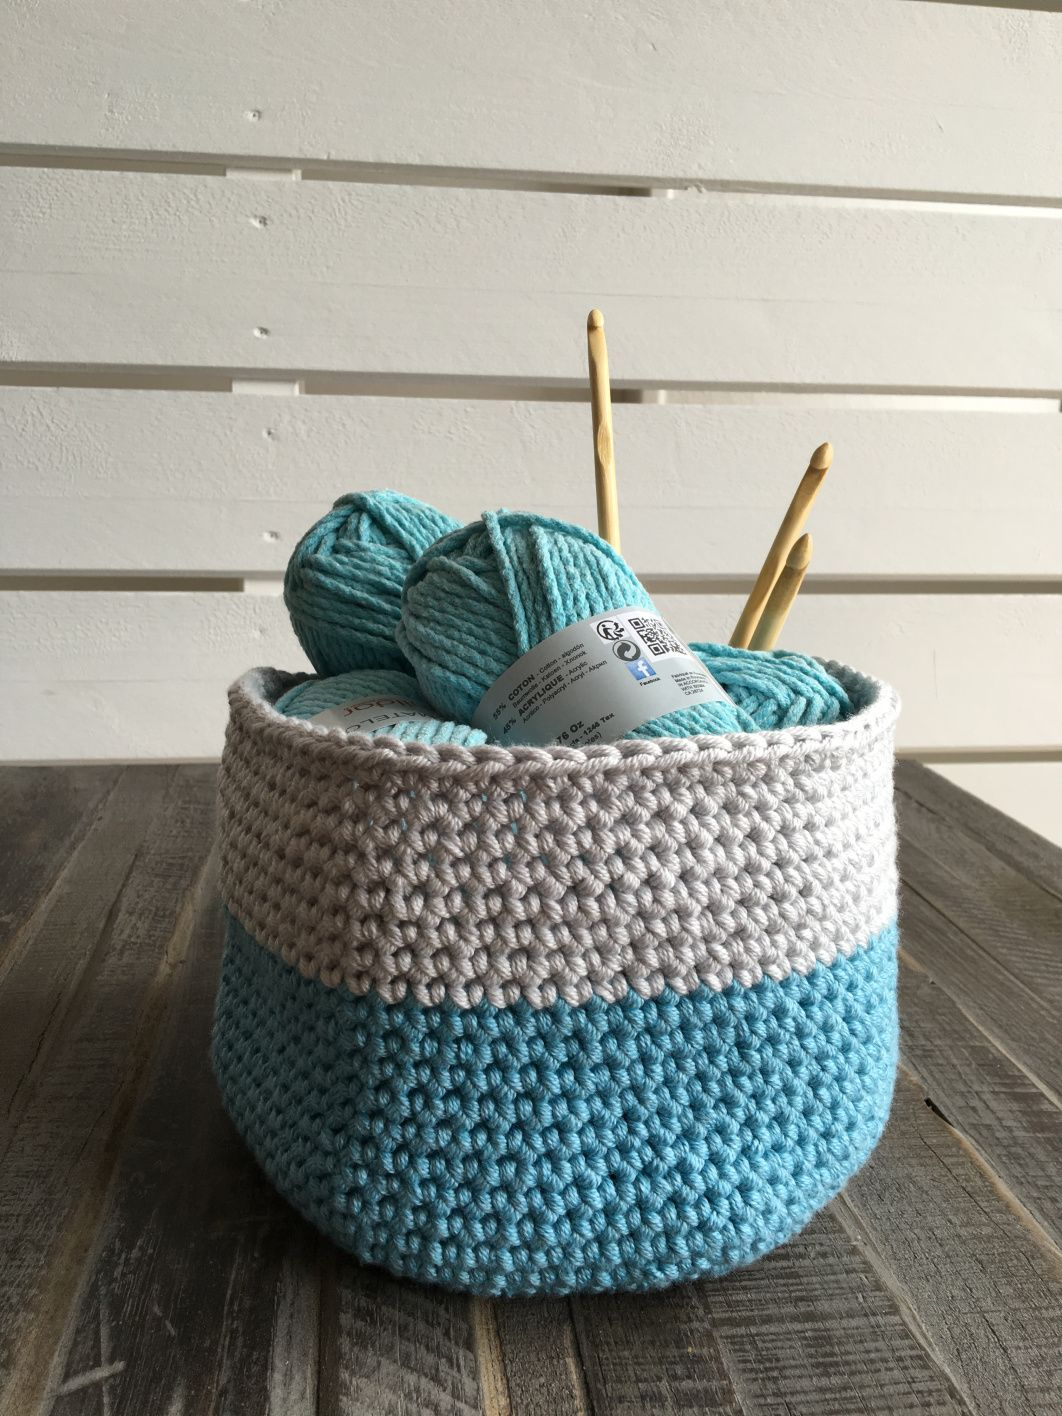 4bf8e47ac170 Tuto   Corbeille en crochet   K C - bowl   Pinterest   Crochet, Diy crochet  and Tricot crochet